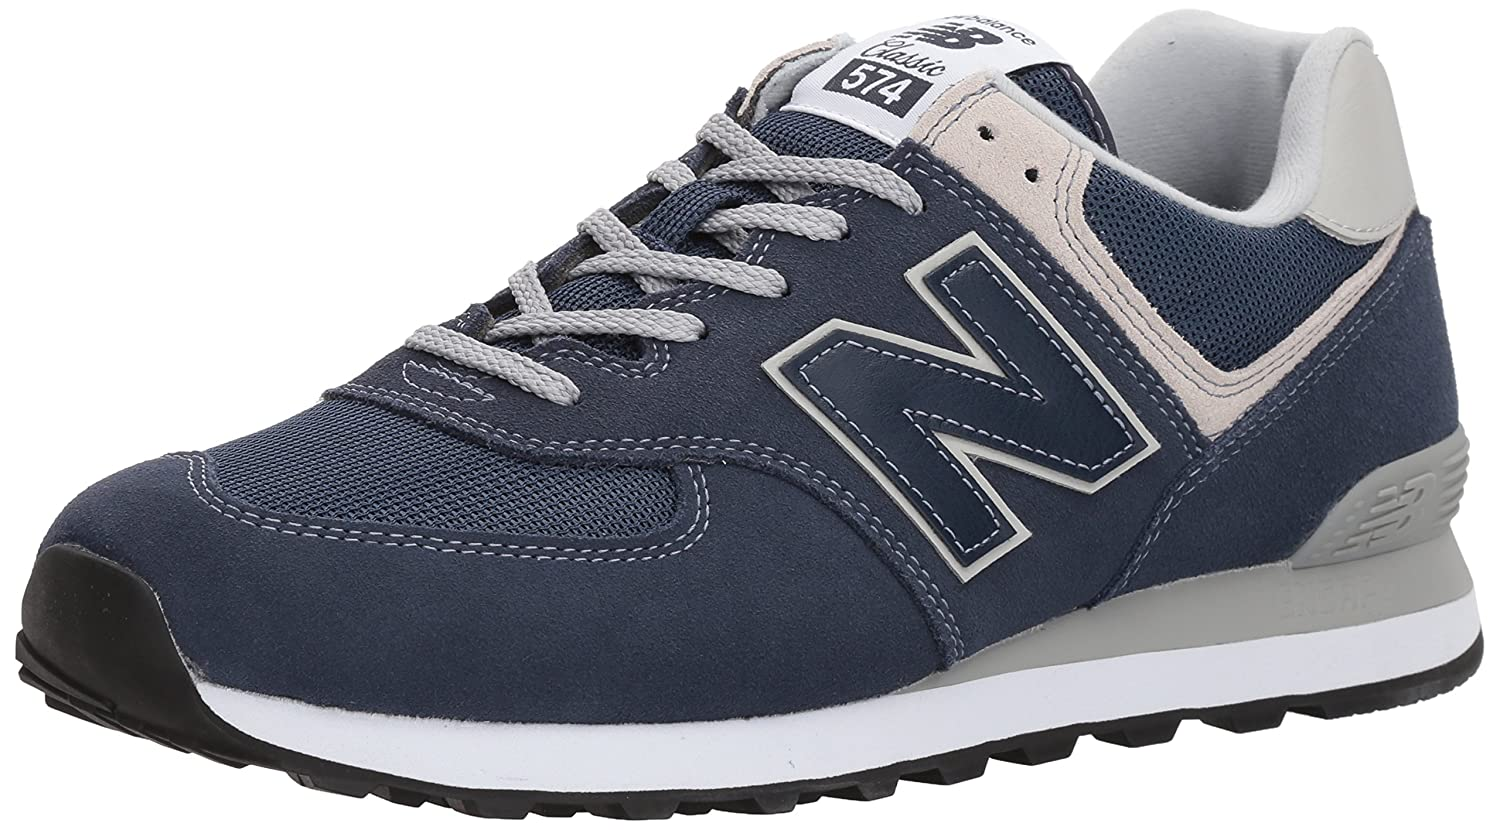 New Balance Ml574, Baskets Homme Homme Baskets 52 2E EU|Multicolore (Mushroom) 2e8e00